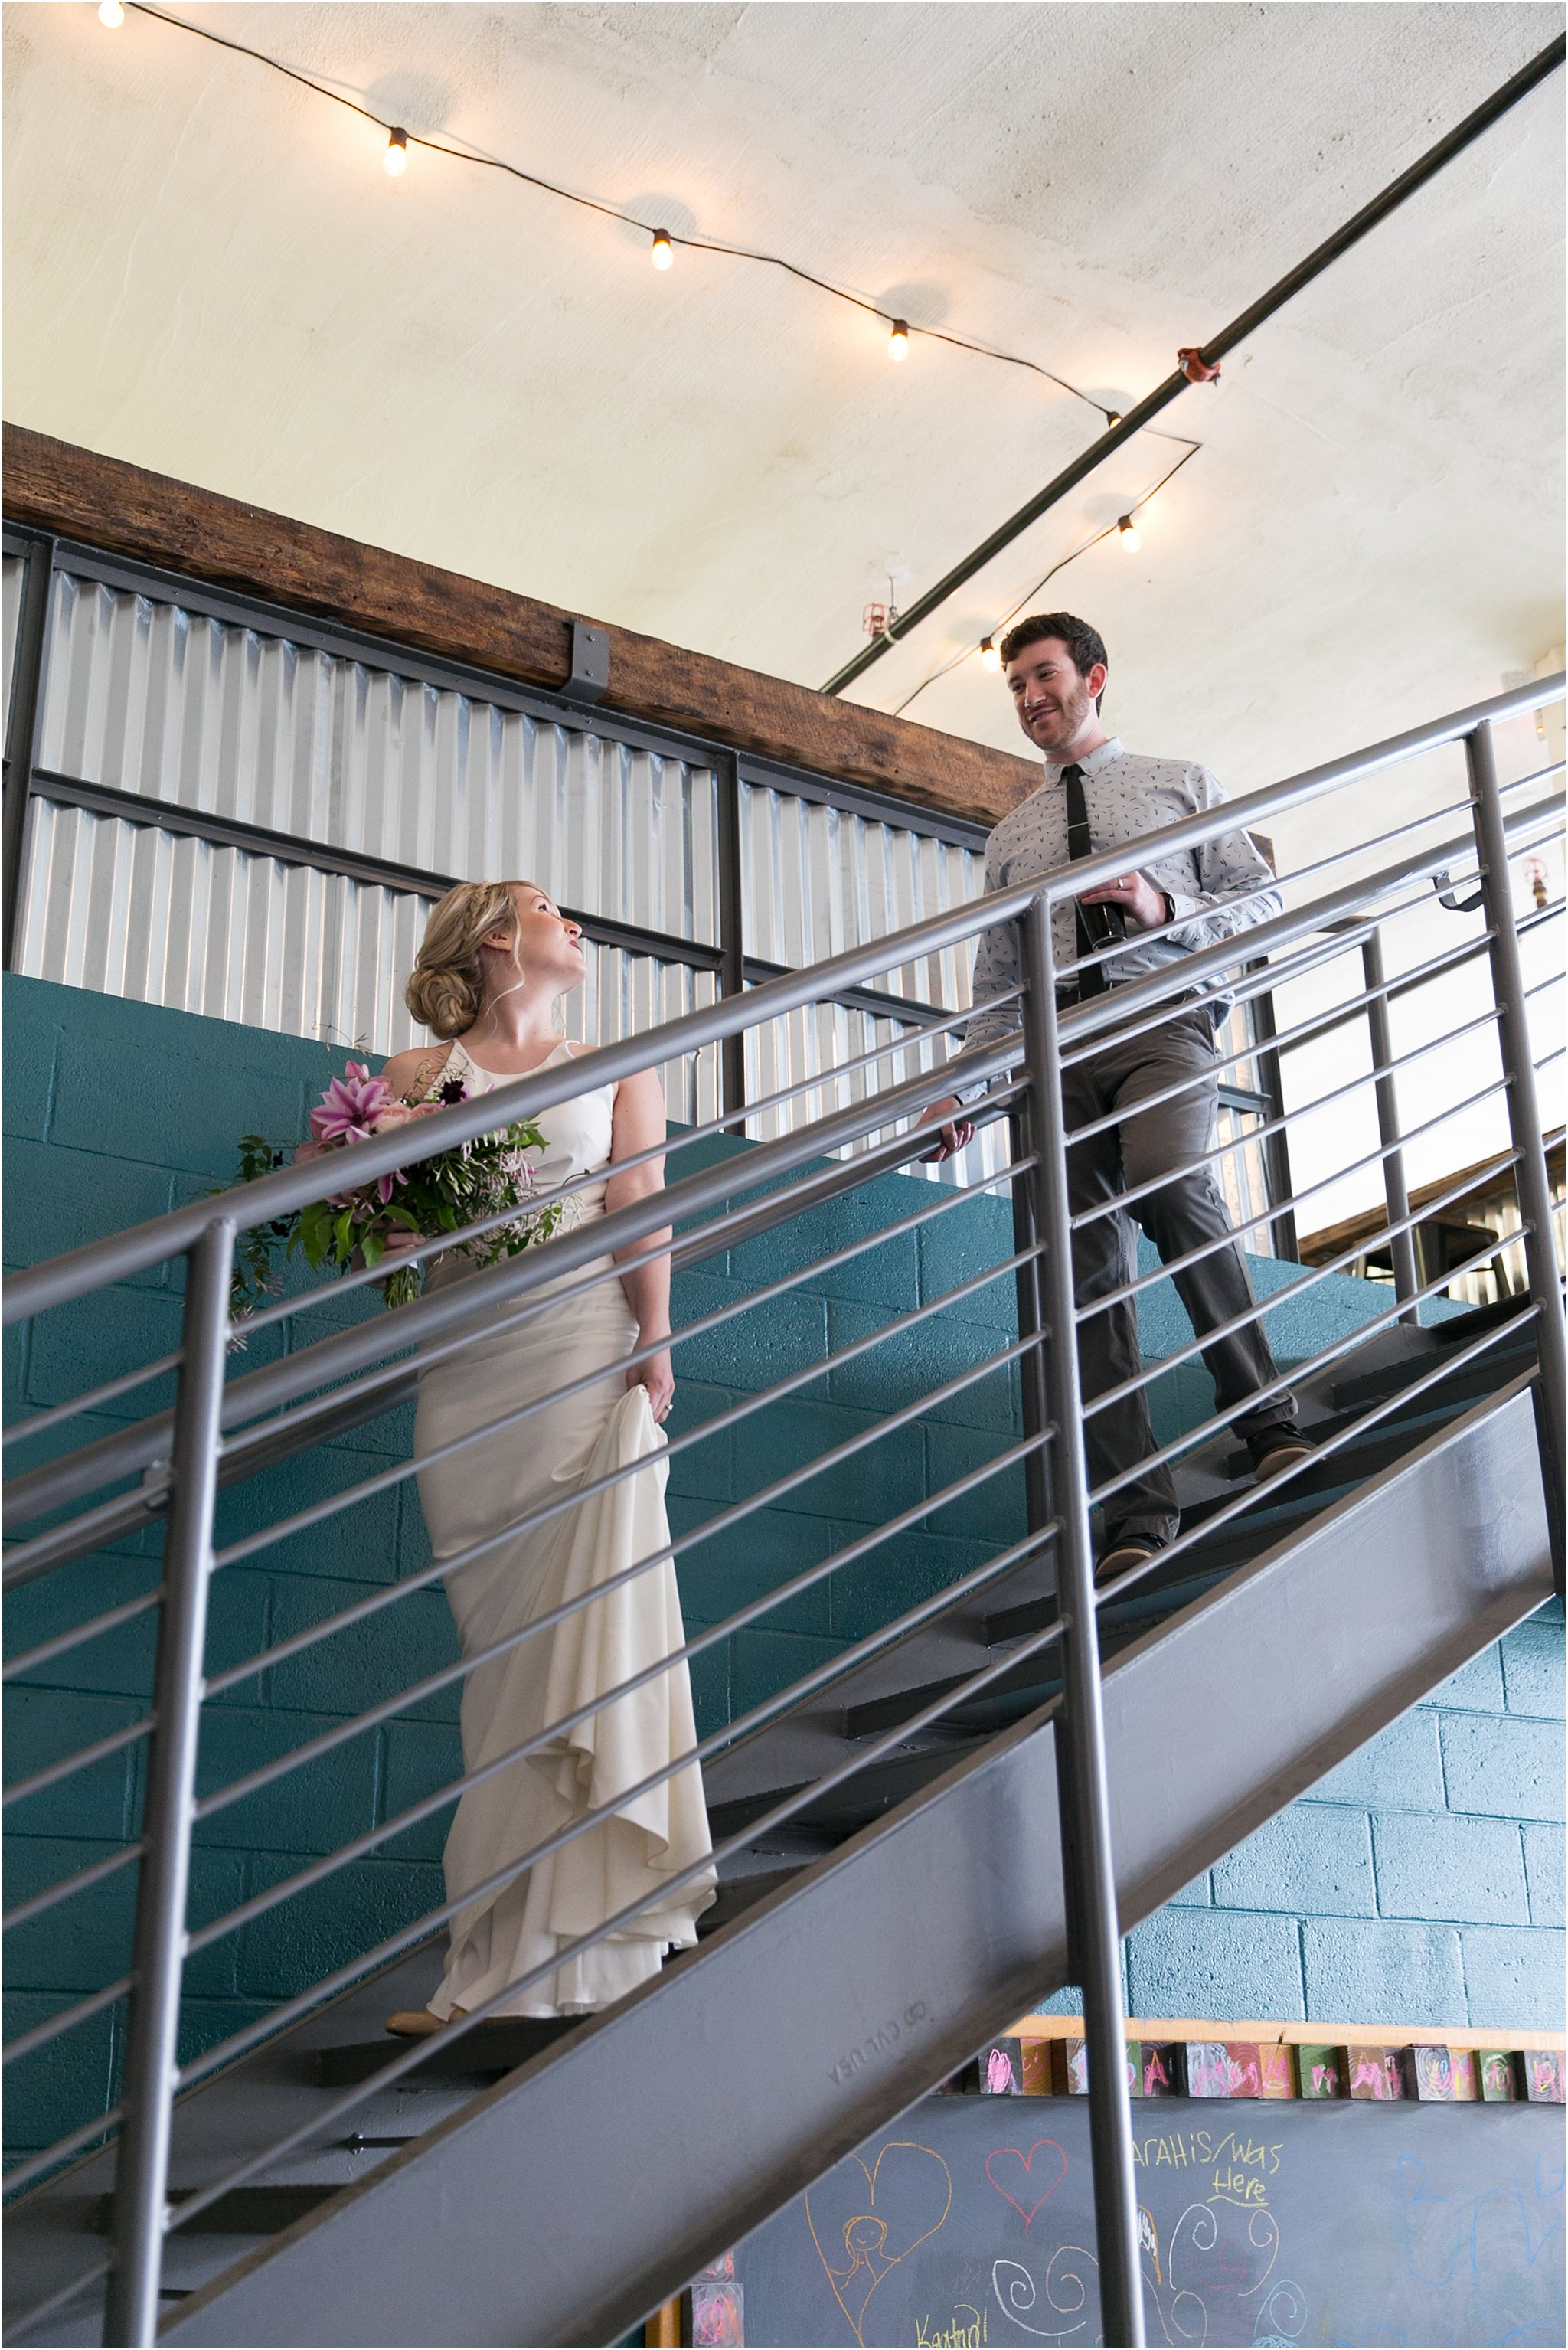 jessica_ryan_photography_oconnor_brewing_wedding_oconnor_brewing_co_norfolk_virginia_roost_flowers_blue_birds_garage__0816